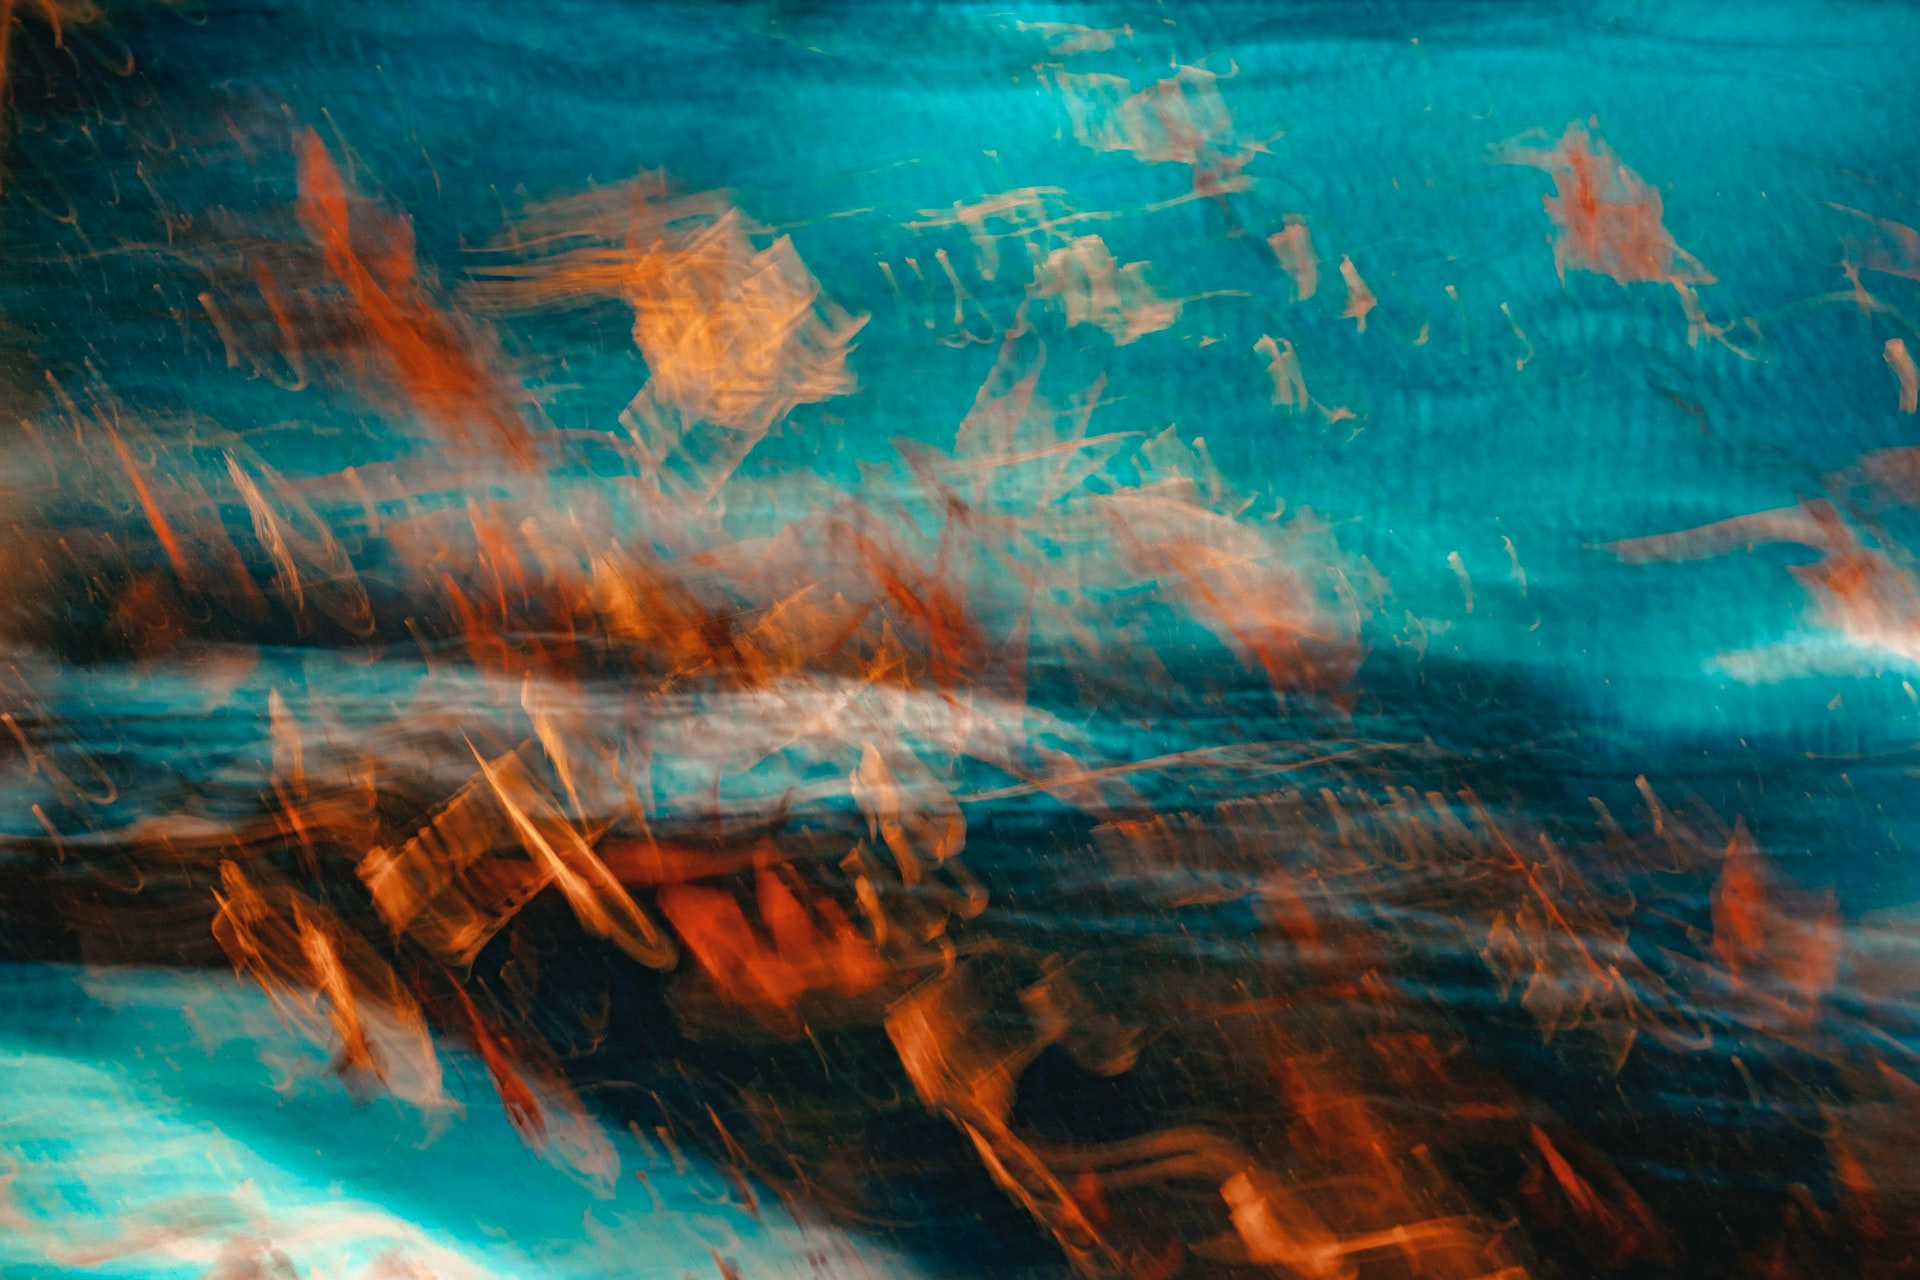 experimental photograph with blue and orange refracted light